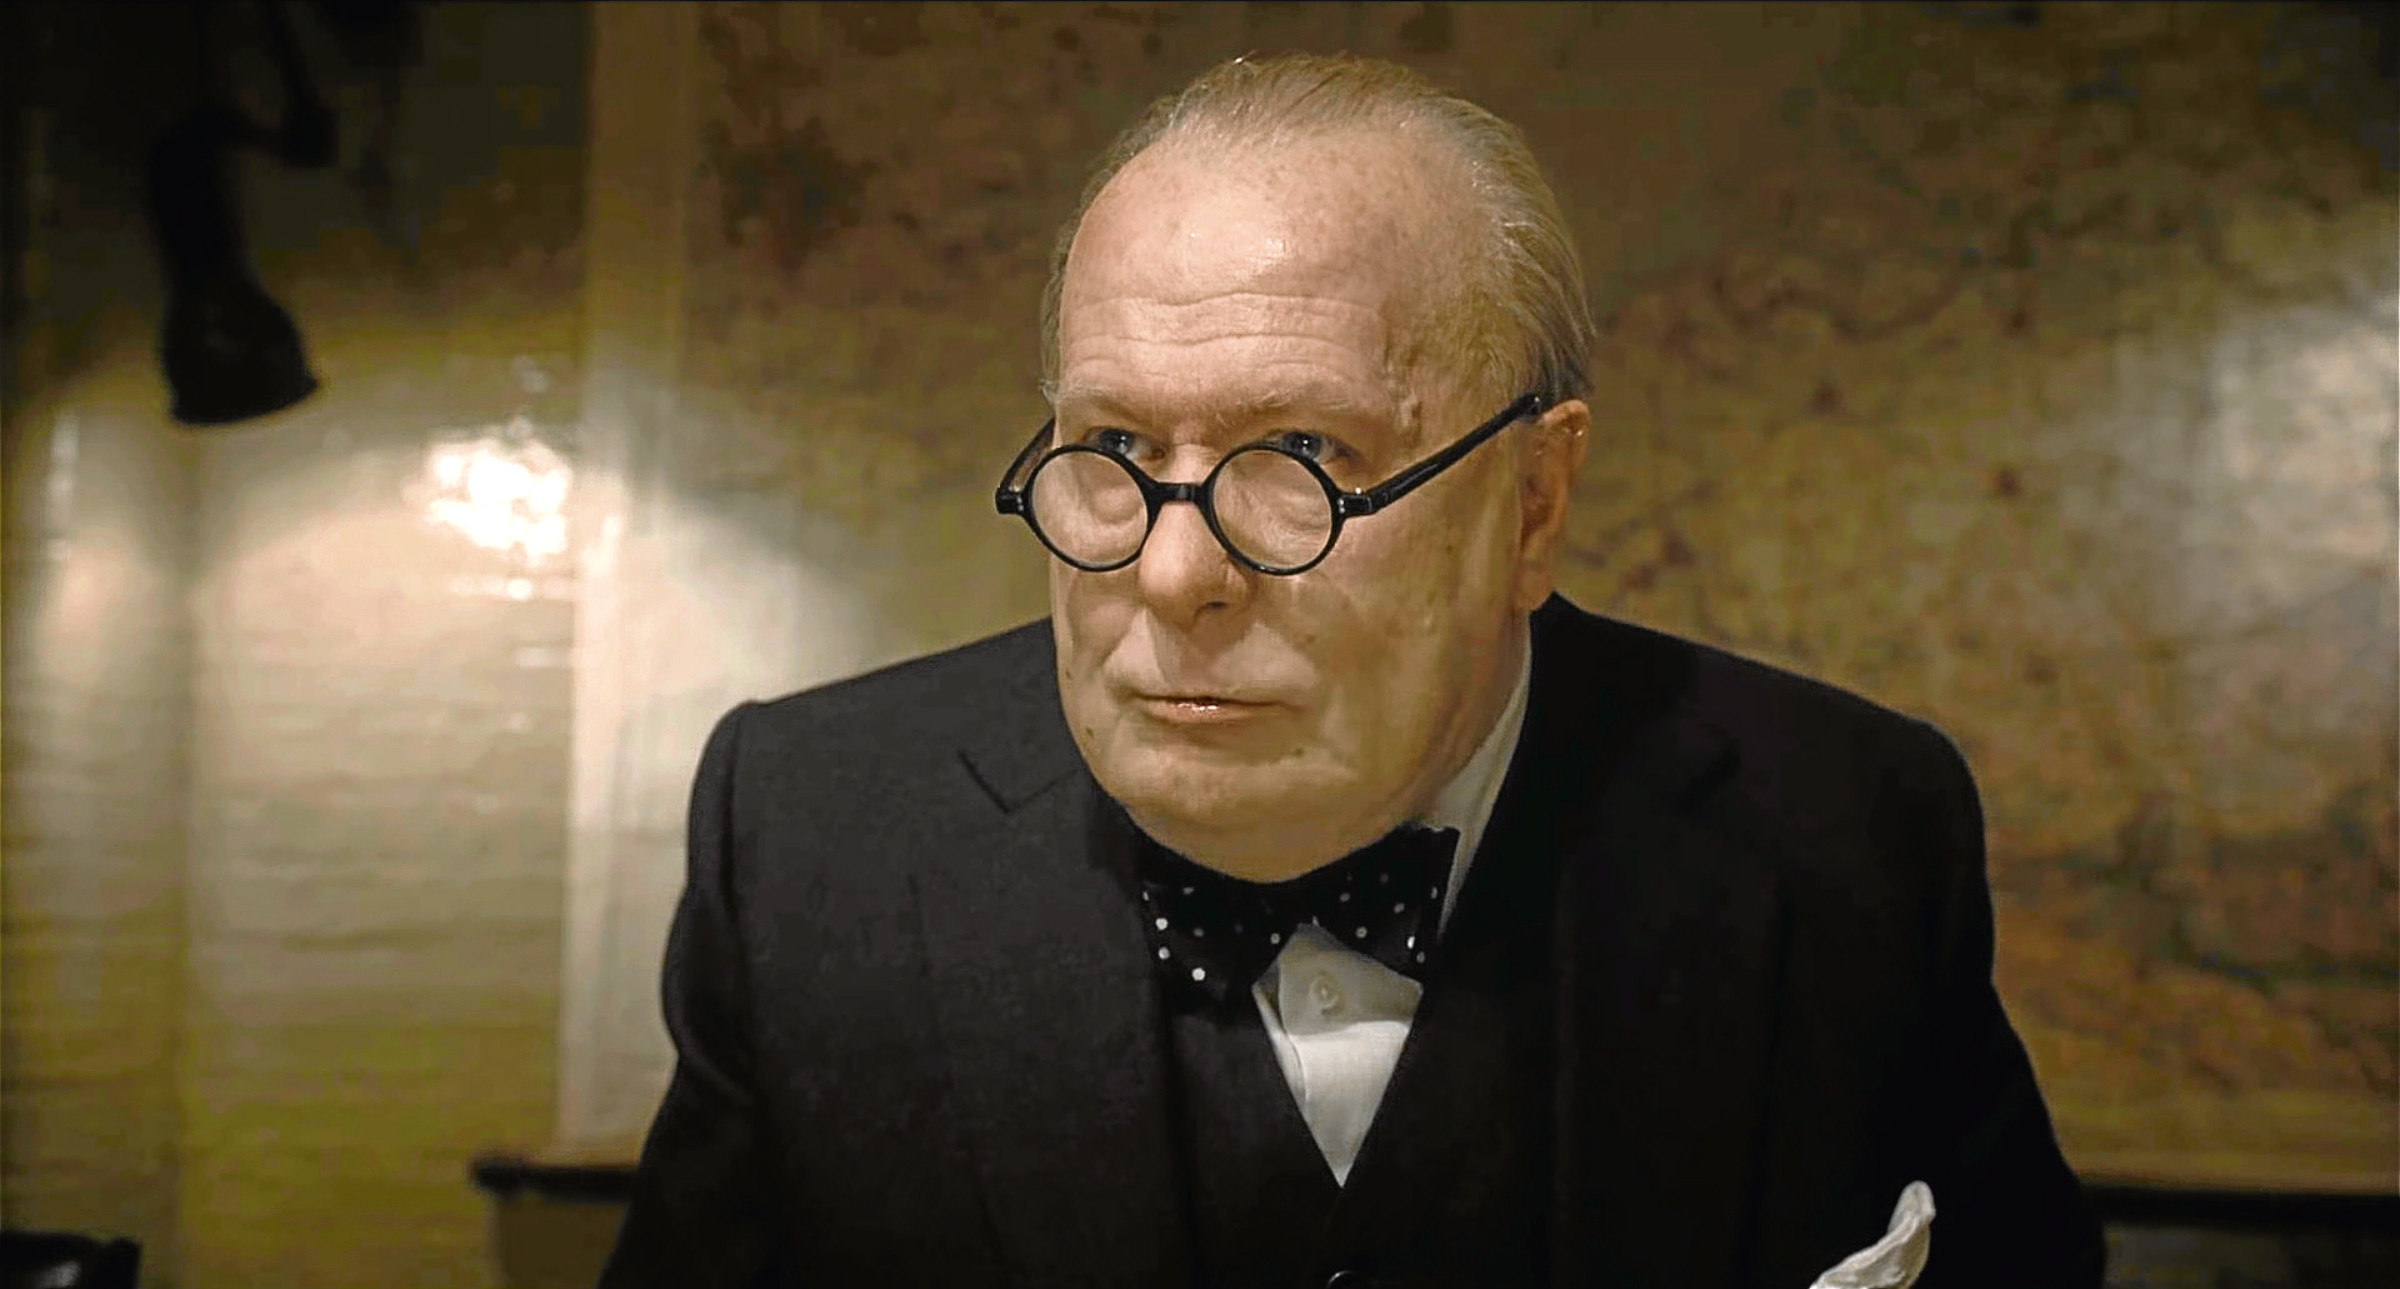 Gary Oldman in Darkest Hour (Allstar/WORKING TITLE FILMS)